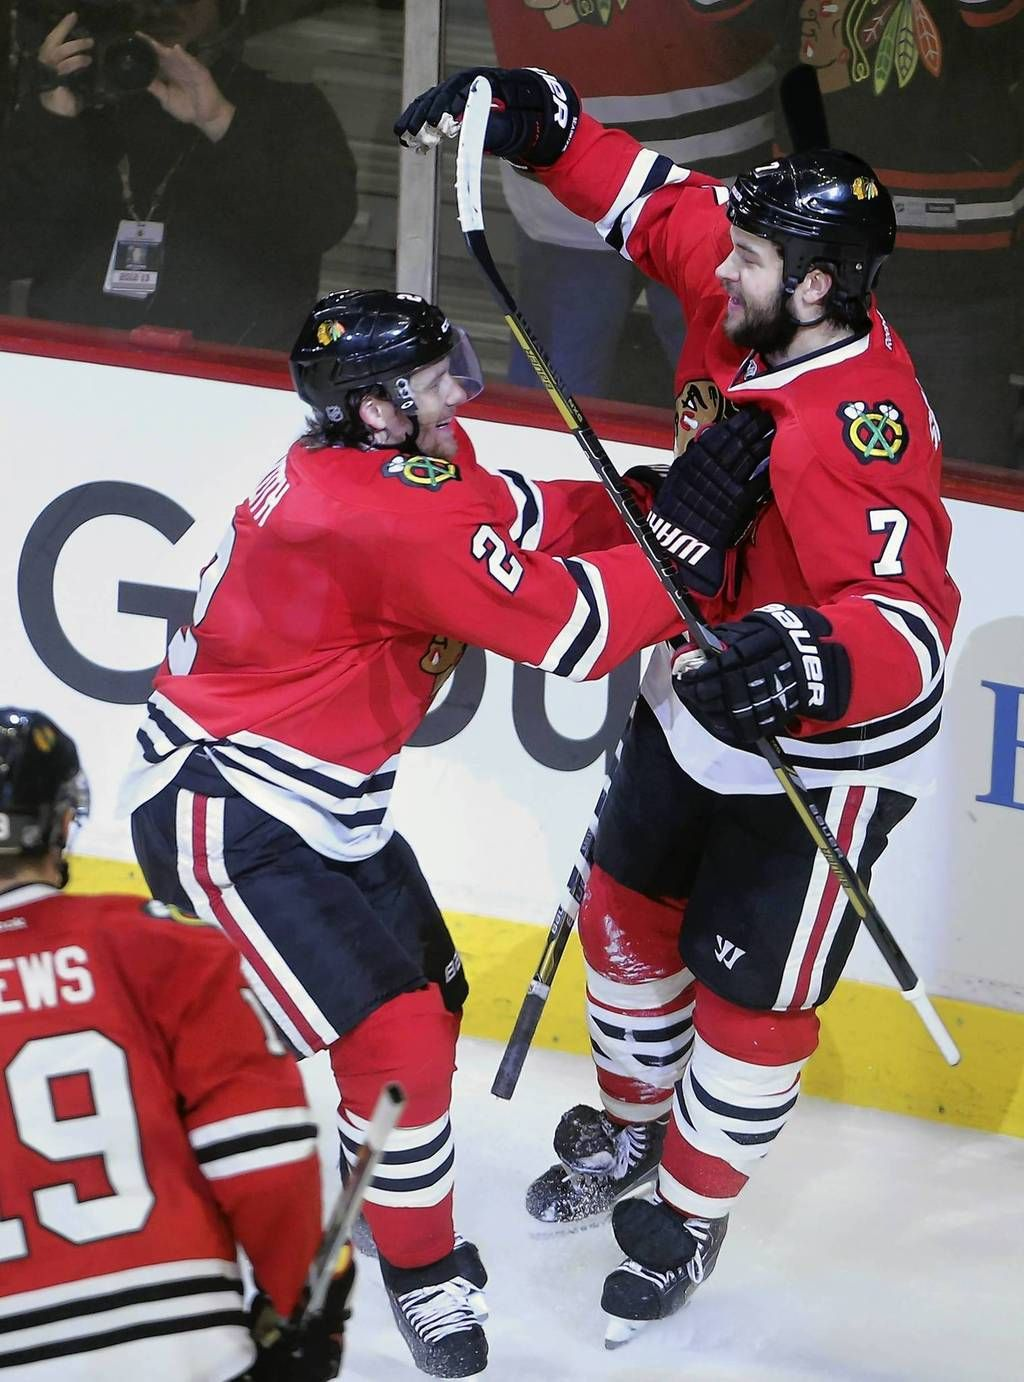 Duncan Keith and Brent Seabrook celebrate Seabrook's goal